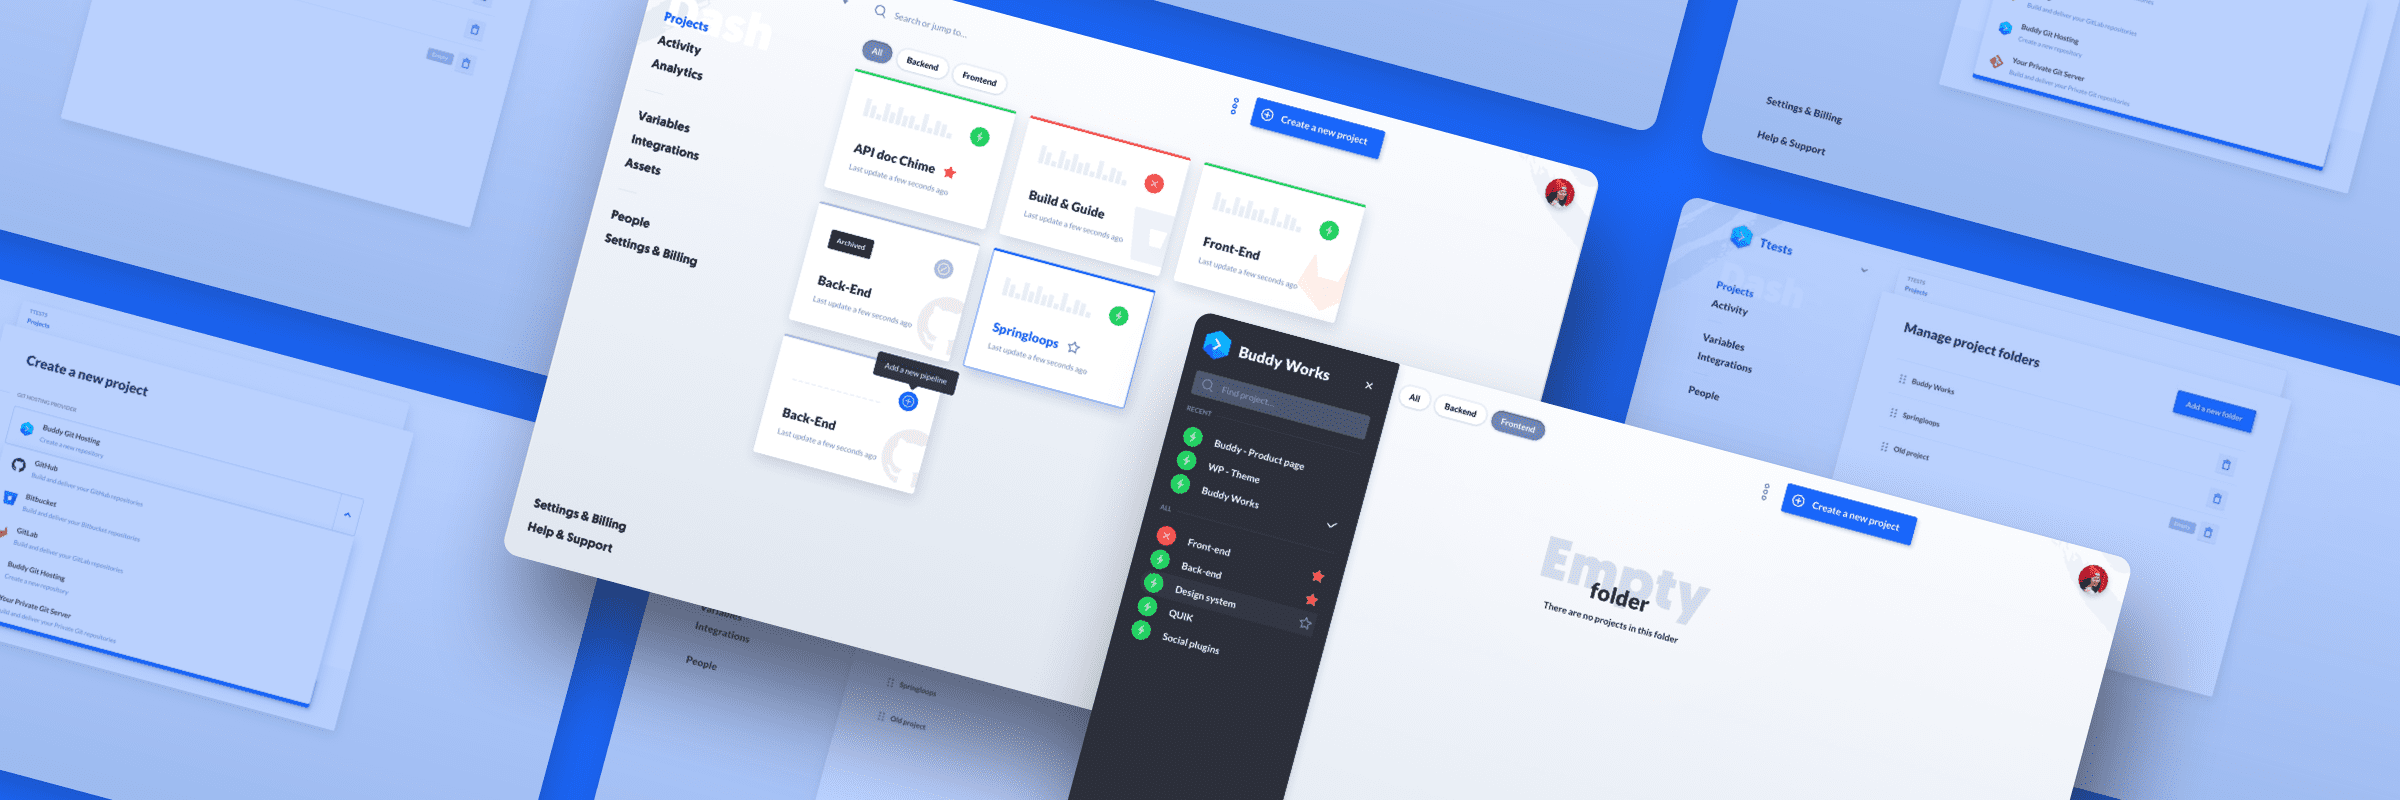 Buddy 2.0: New projects view, workspace navigation, and more 🔥